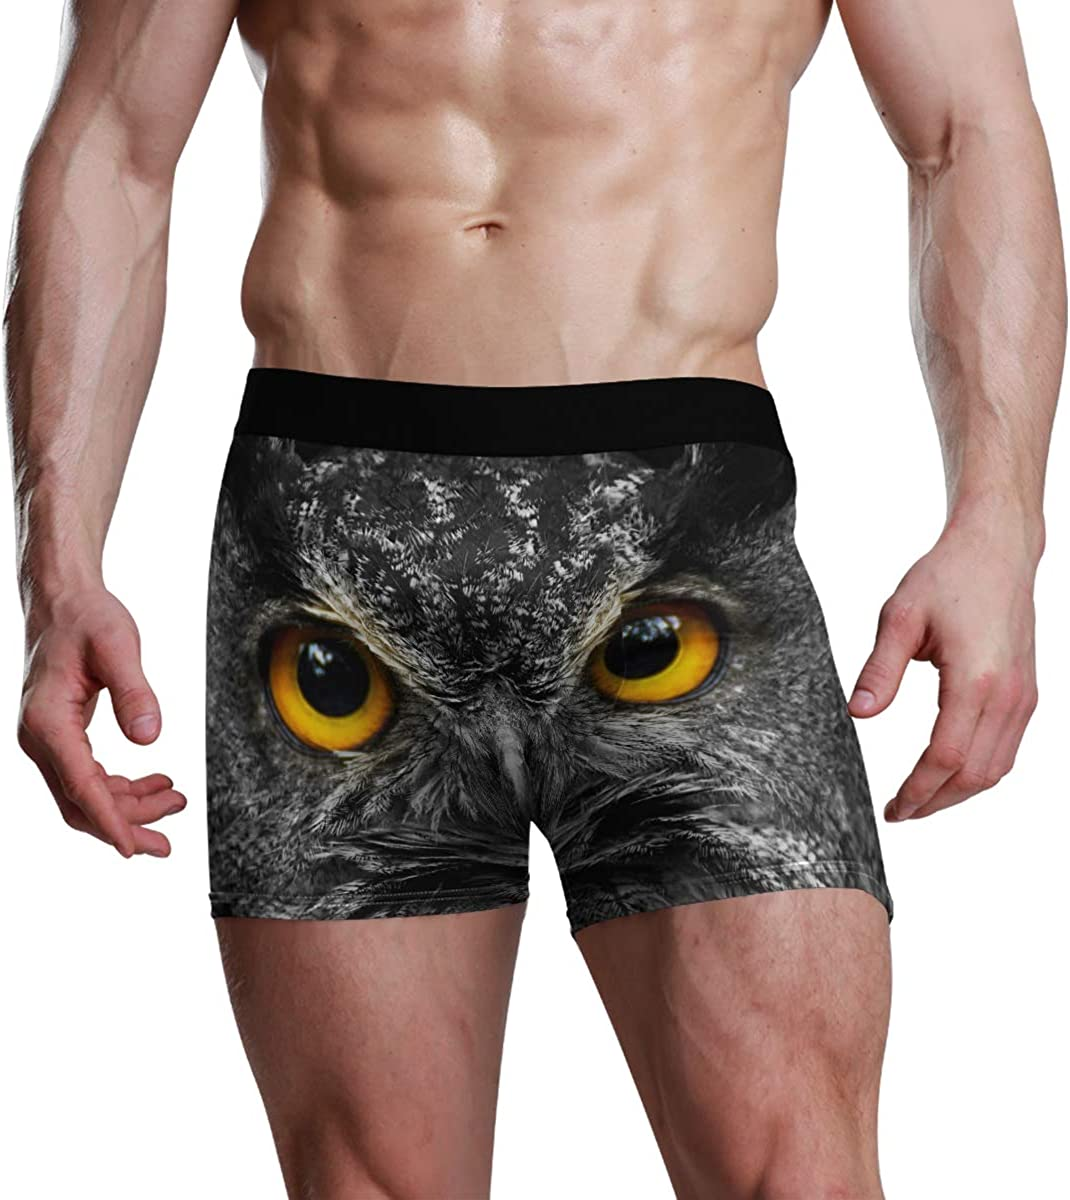 Men's Underwear Black and White Portrait Owl with Big Yellow Eyes Breathable Boxer Briefs Low Rise Long Leg